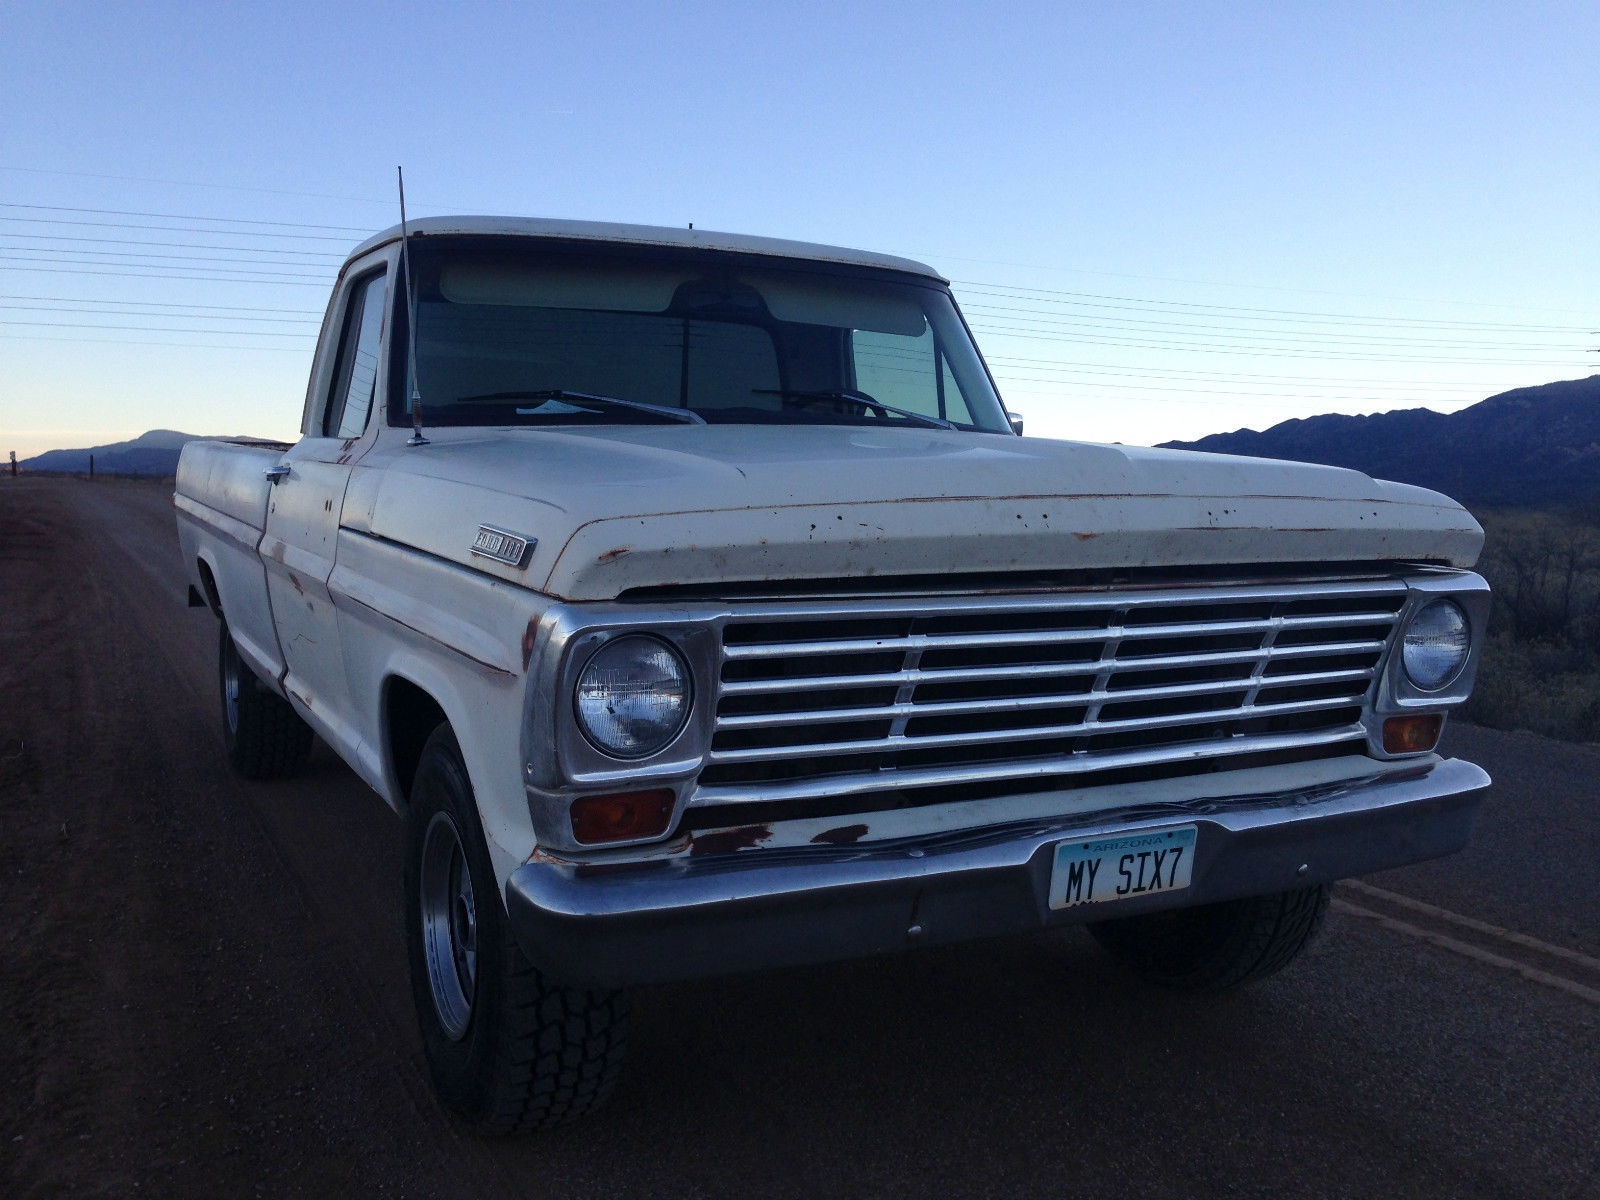 1967 Ford F 100 F100 Shop Truck Patina For Sale In Cottonwood 1964 250 Camper Special Arizona United States